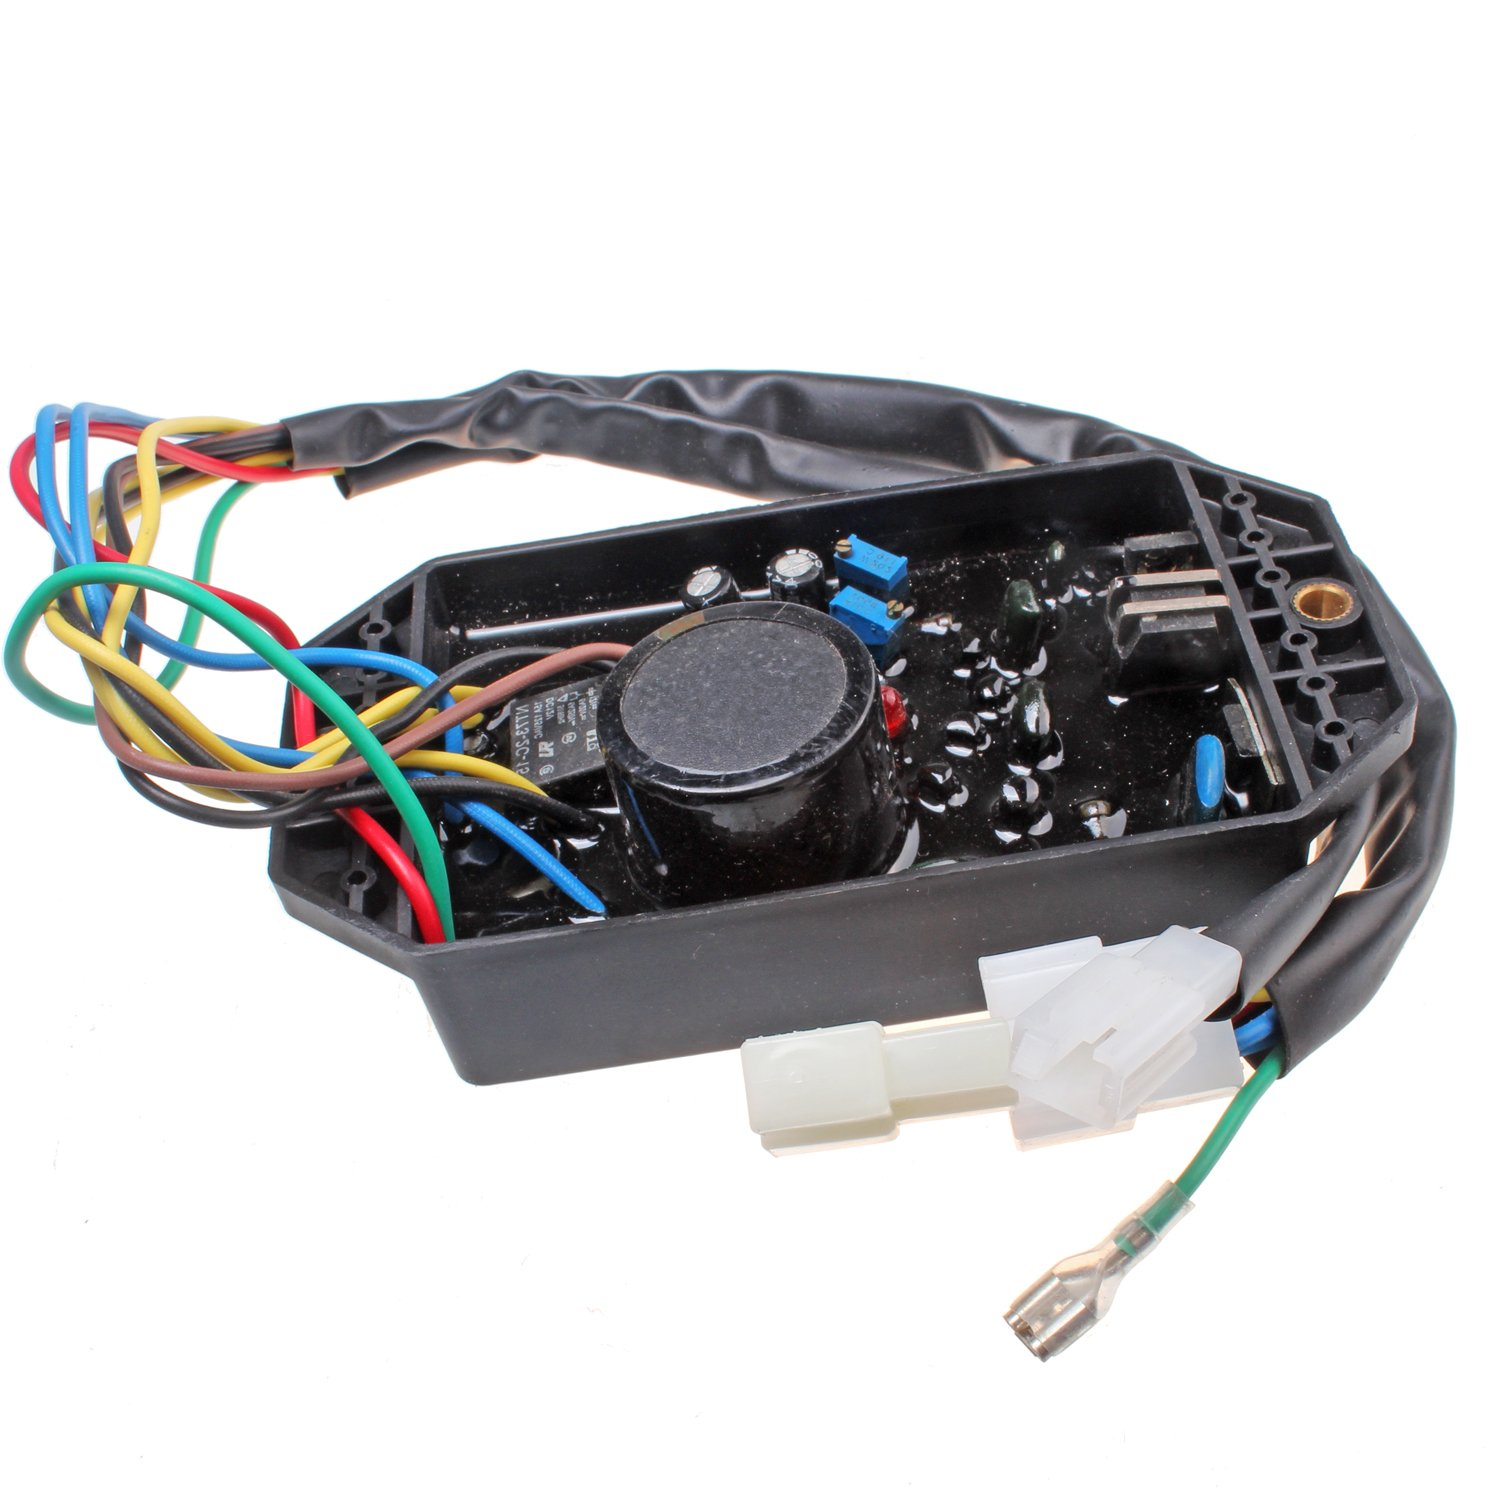 Mover Parts Voltage Regulator PLY-DAVR-50S AVR 10 wires For KIPOR Generator 1phase 5KW